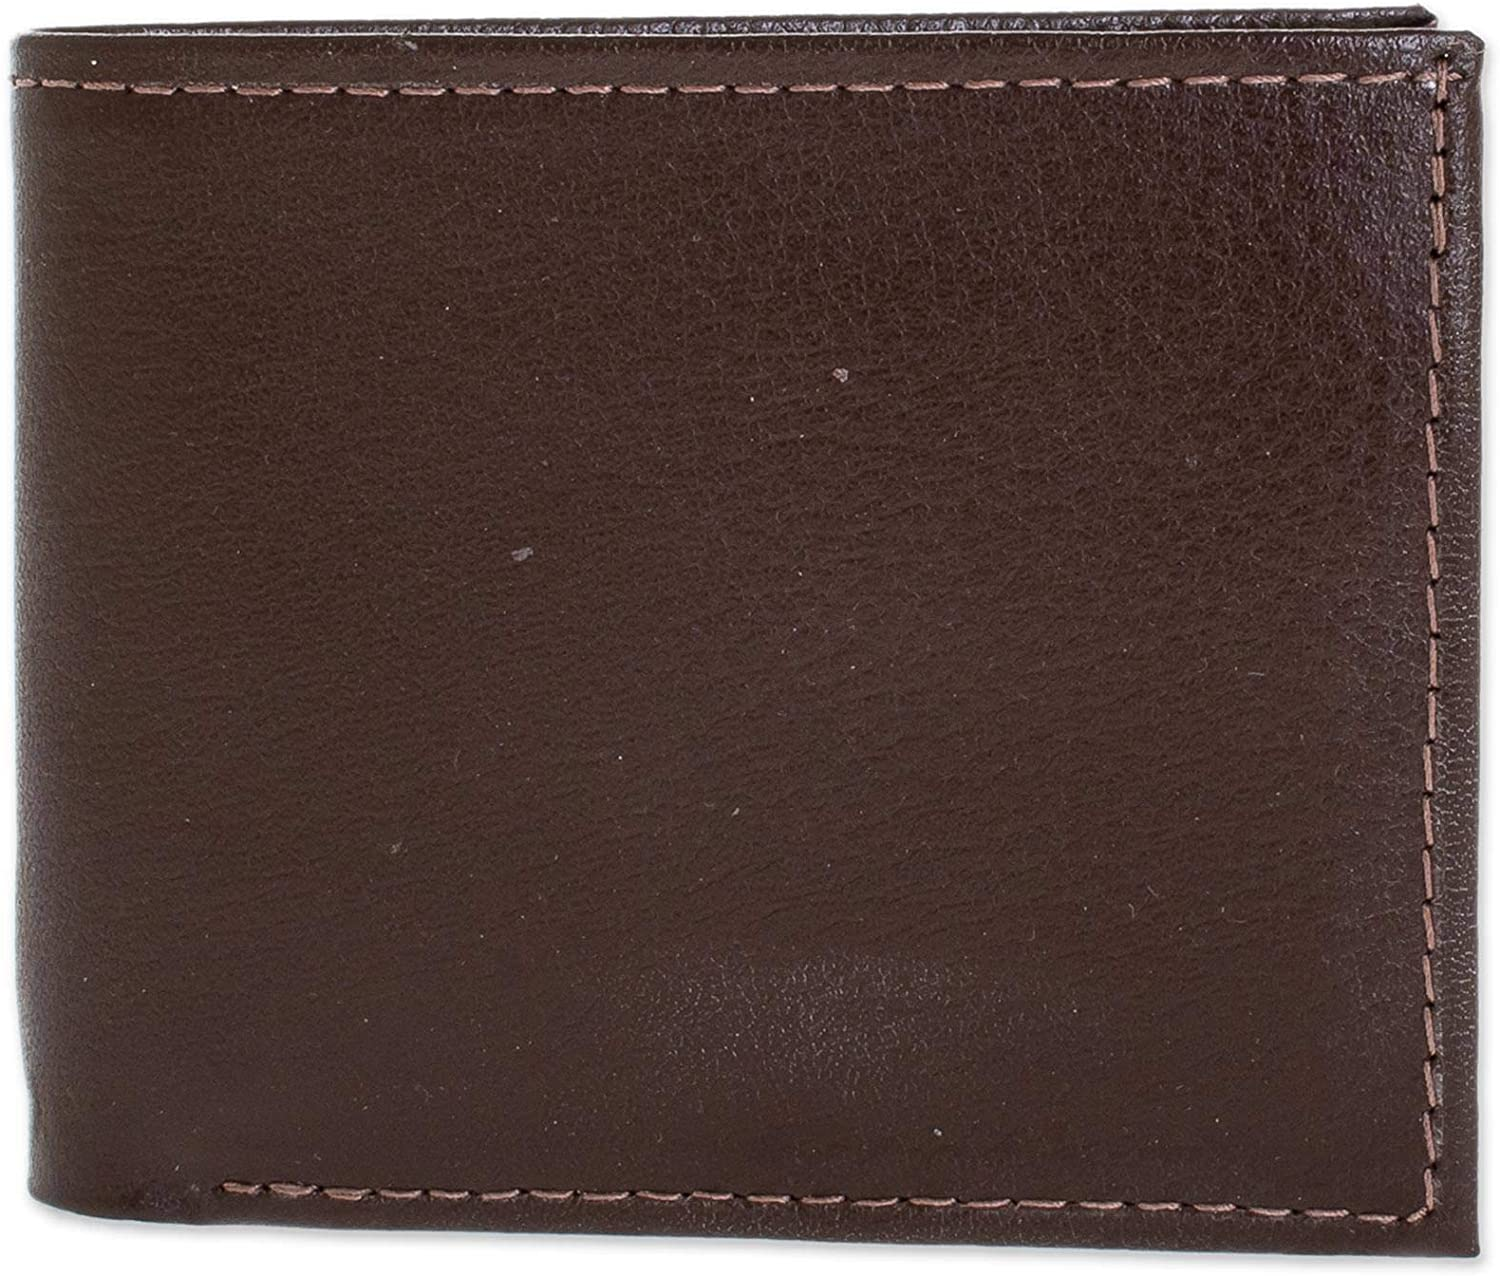 NOVICA Leather wallet, Chestnut Convenience'